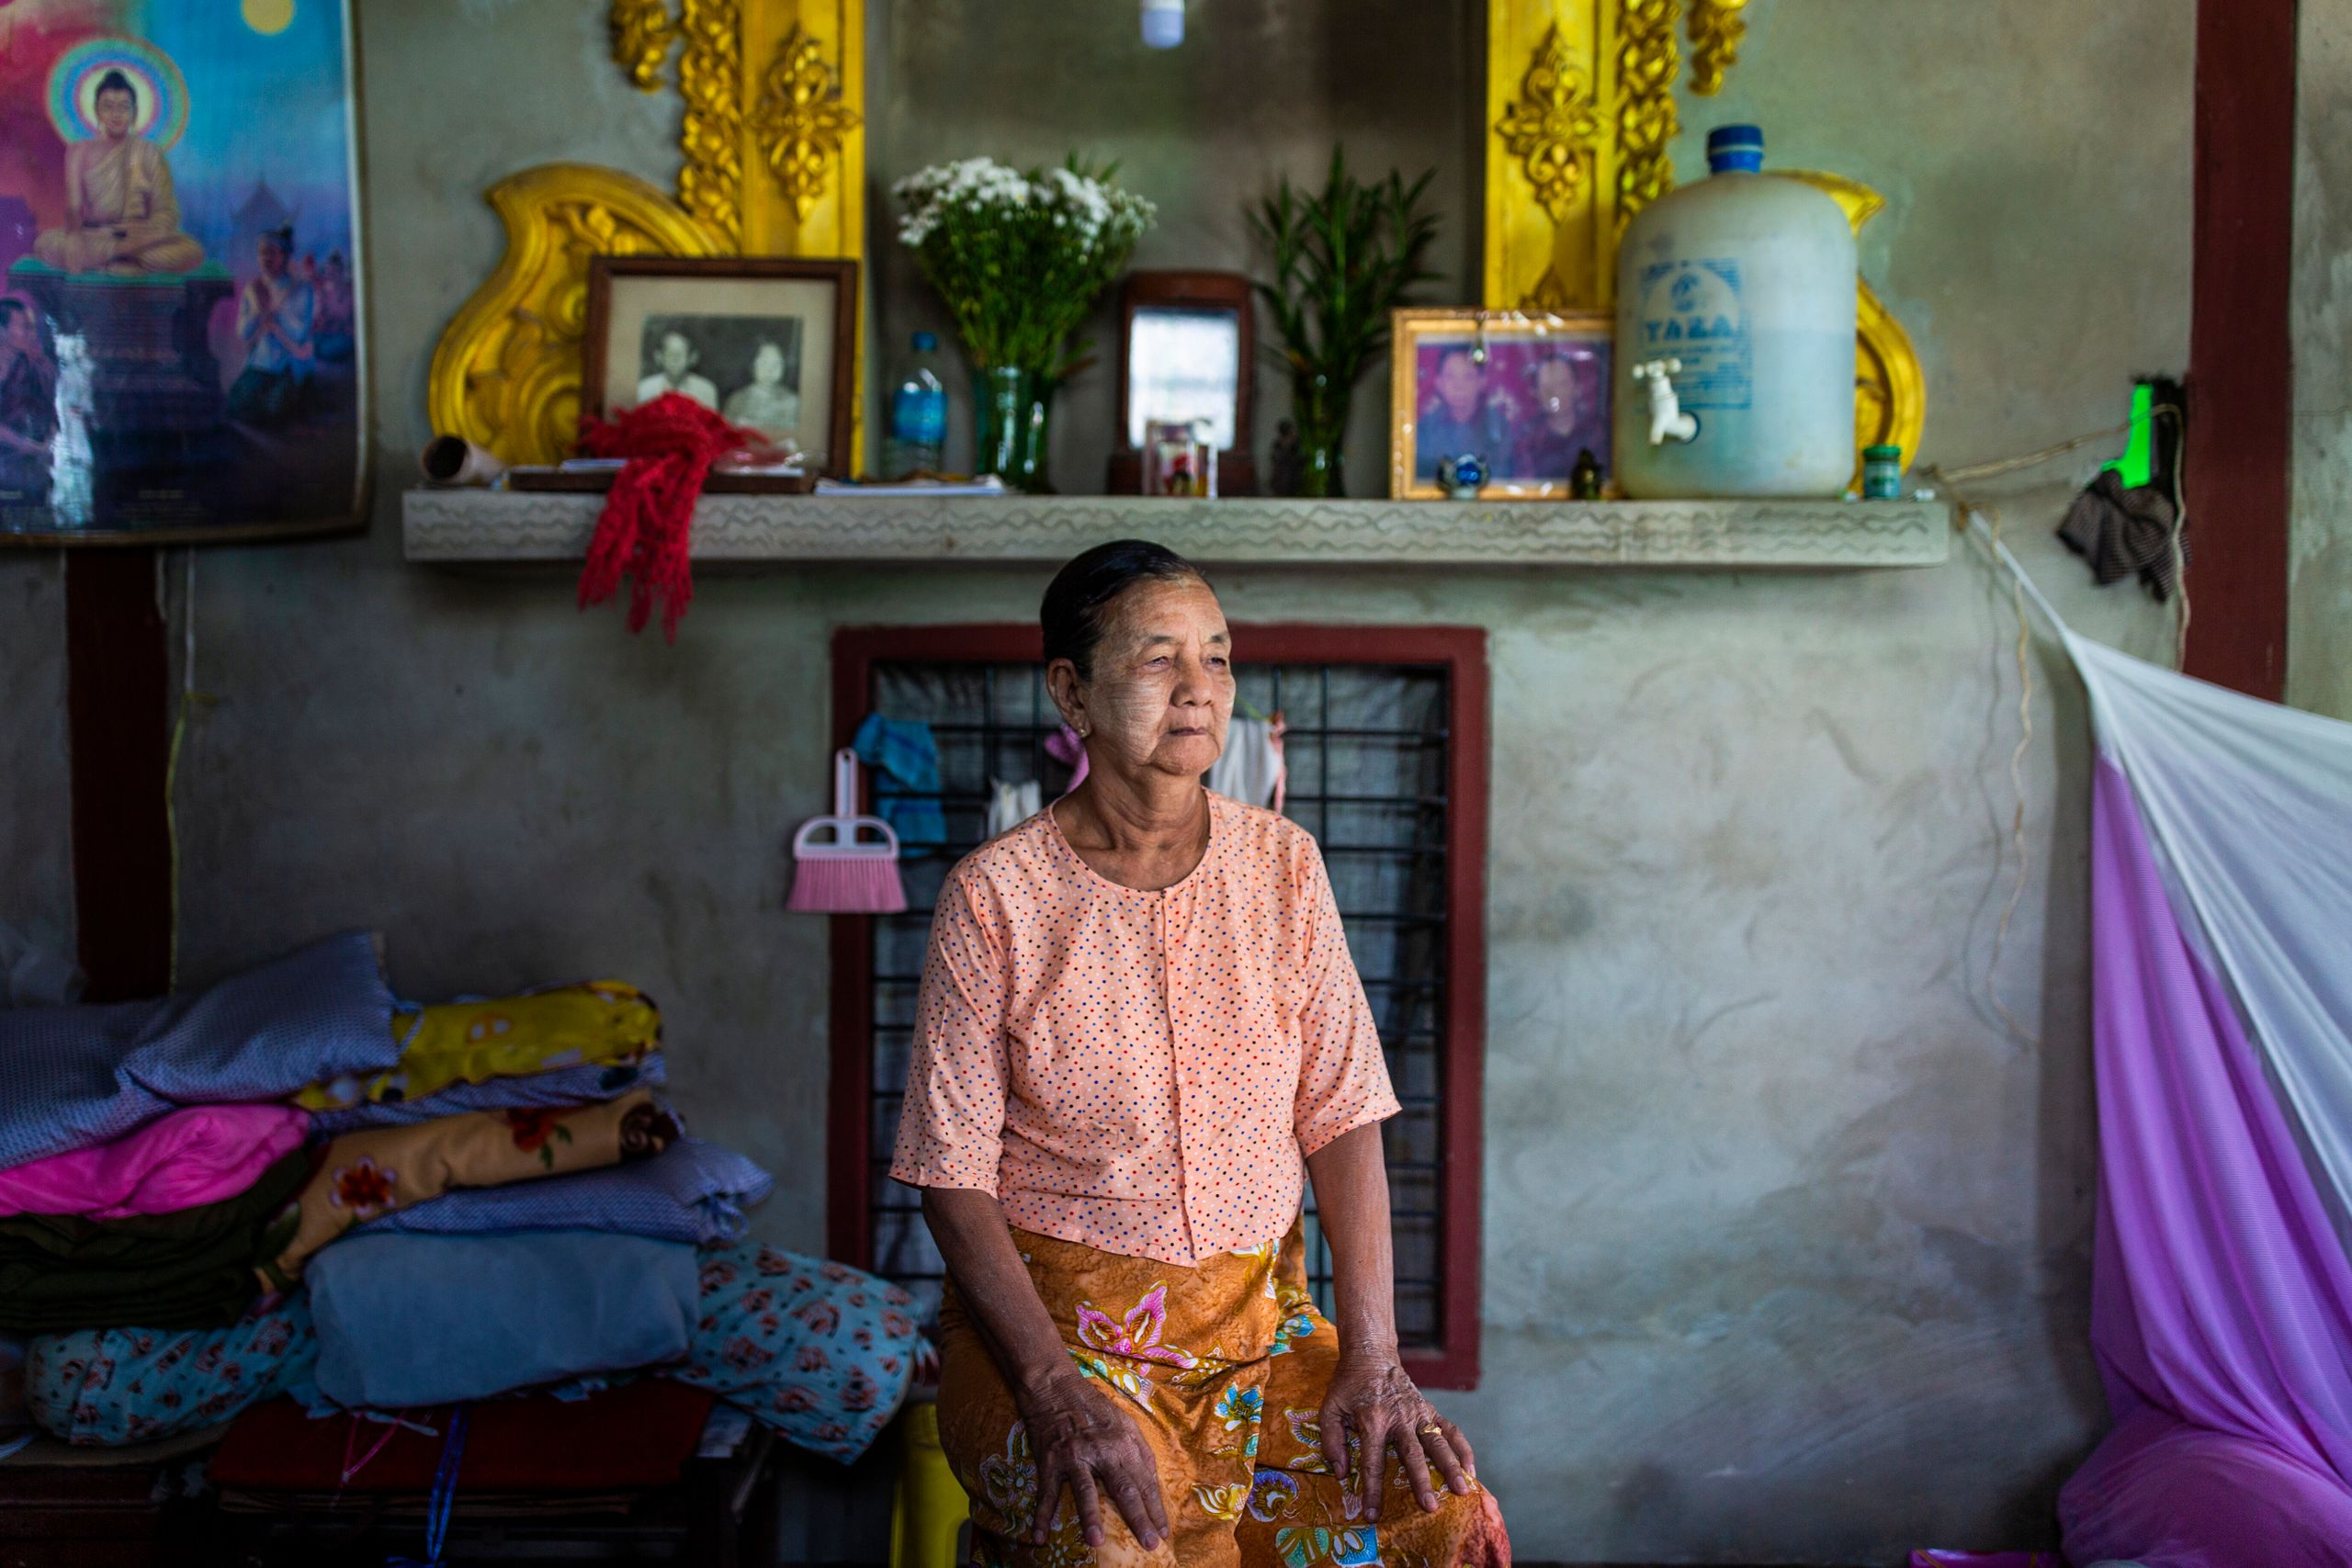 Daw San Aye, 72, poses for a portrait in Yangon division, Myanmar. She says life has improved since plastic has been introduc